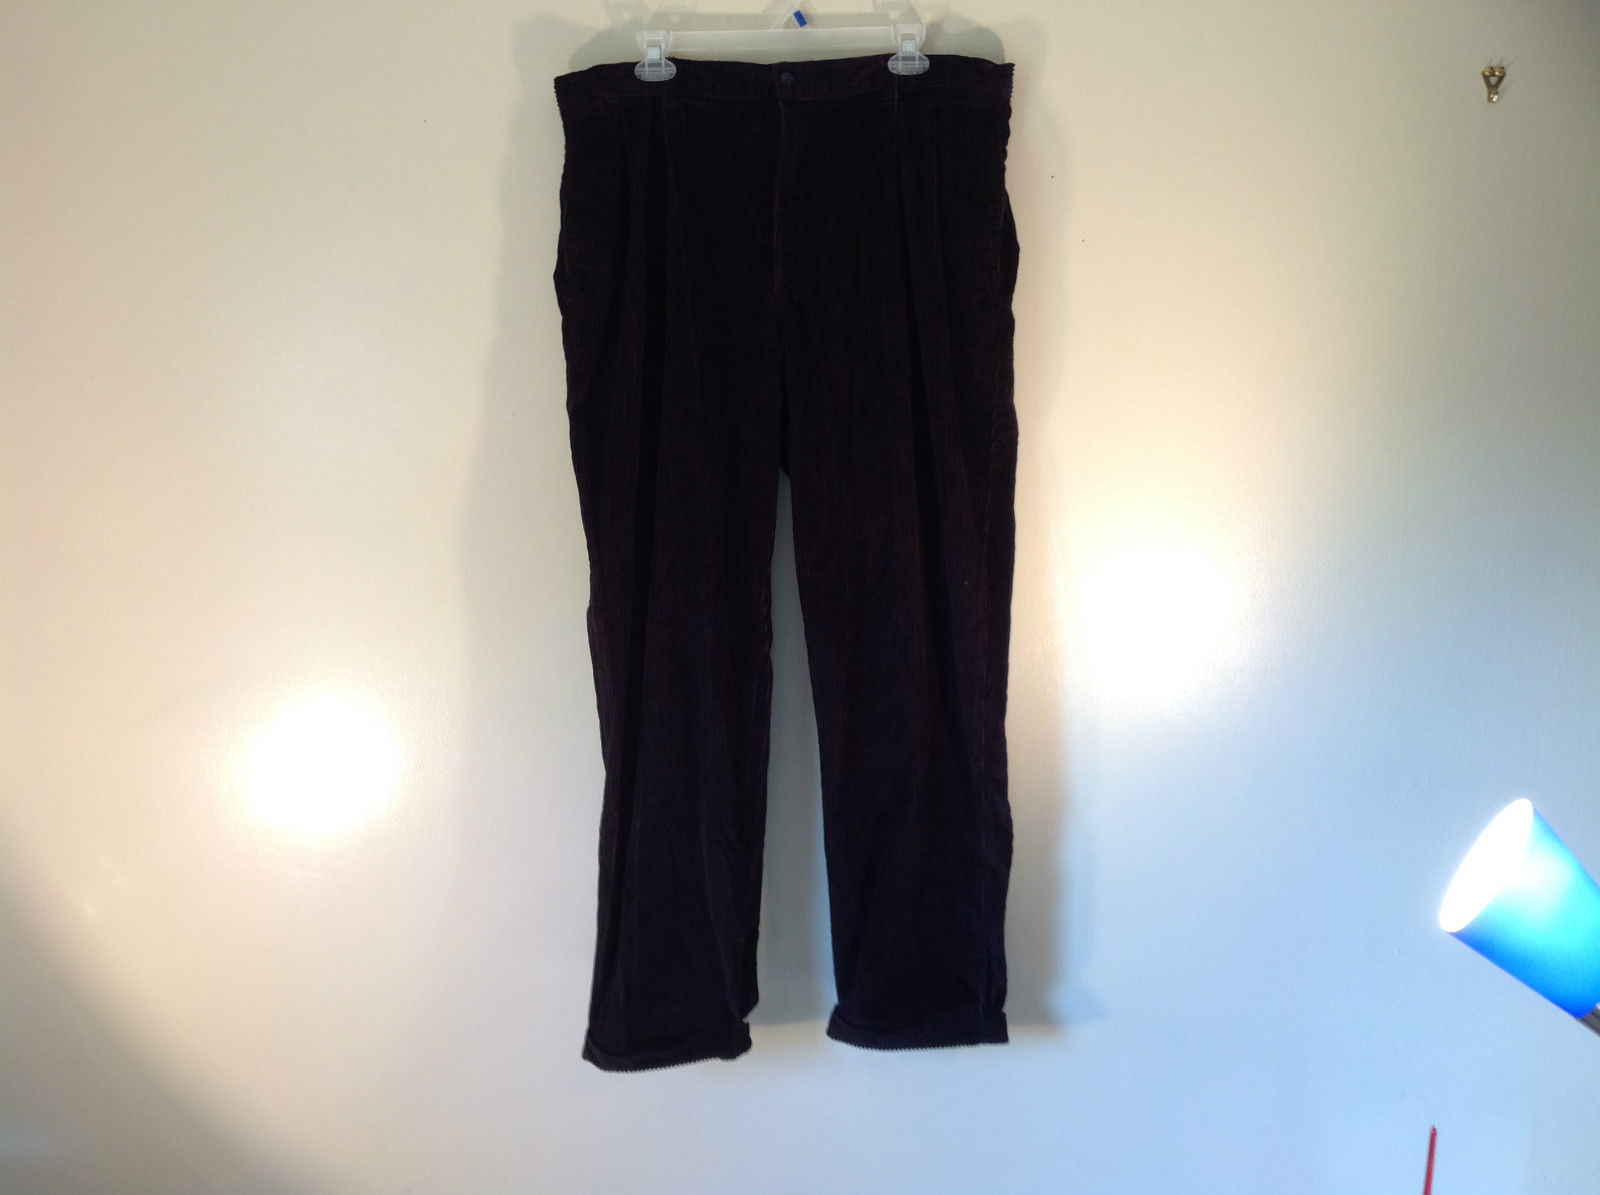 Jet Black Corduroy Pants Club Room 100 Percent Cotton Size 38 by 30